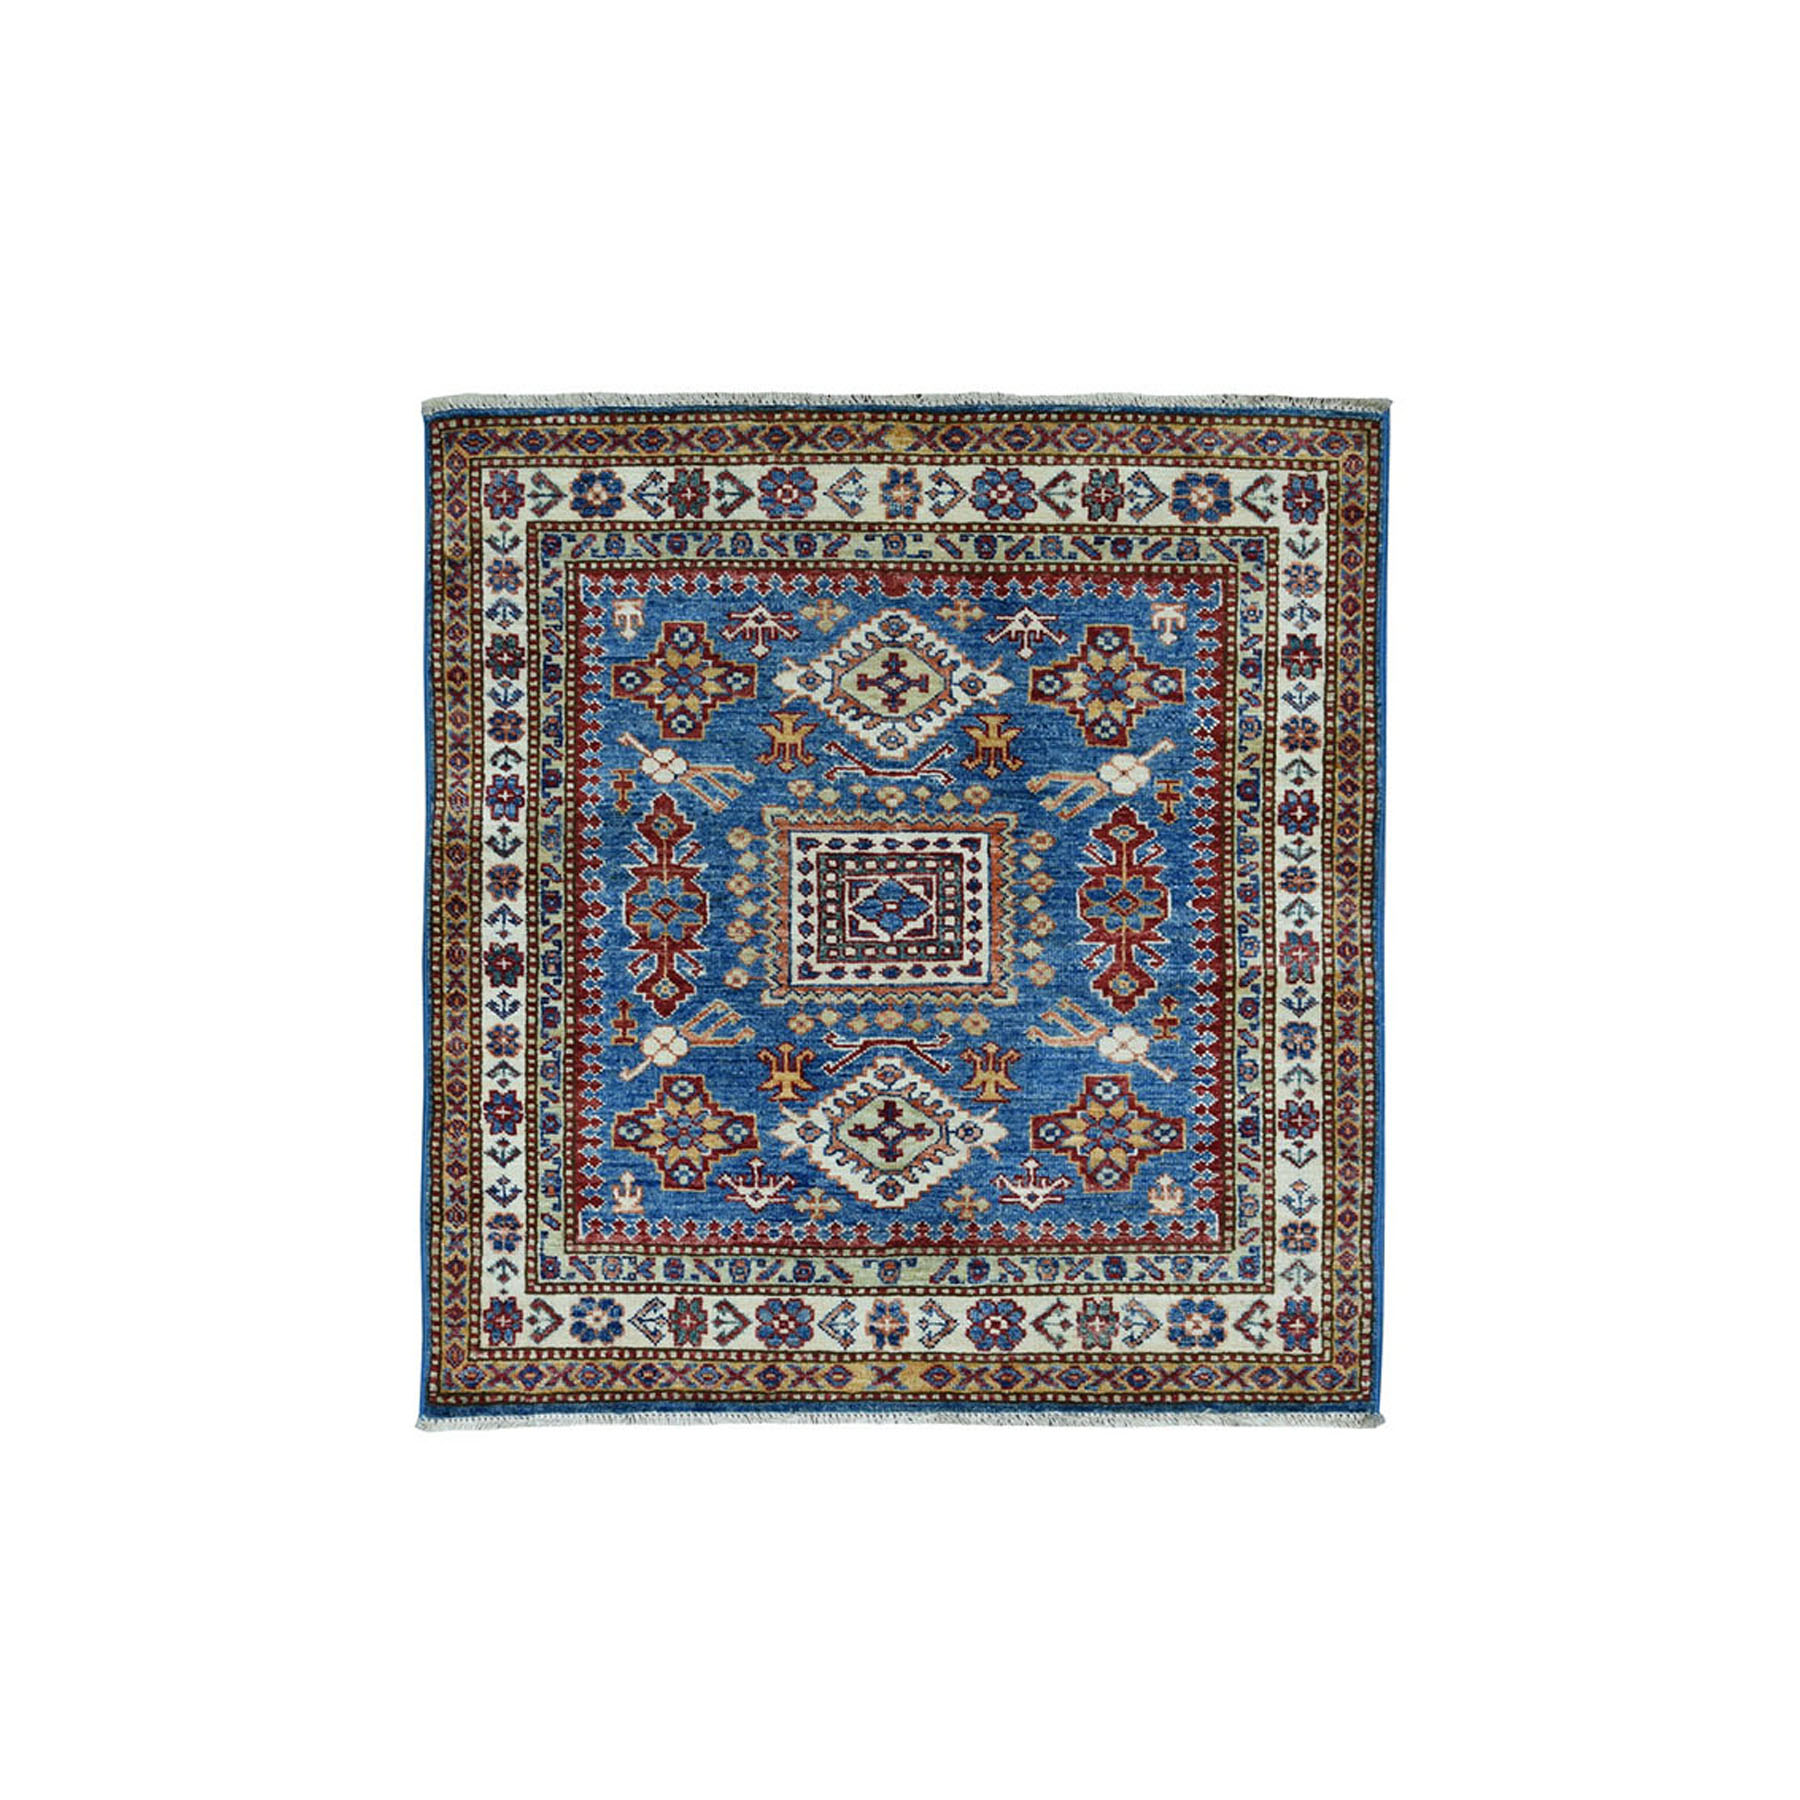 "3'3""X3'3"" Square Blue Super Kazak Pure Wool Geometric Design Hand-Knotted Oriental Rug moae09c7"